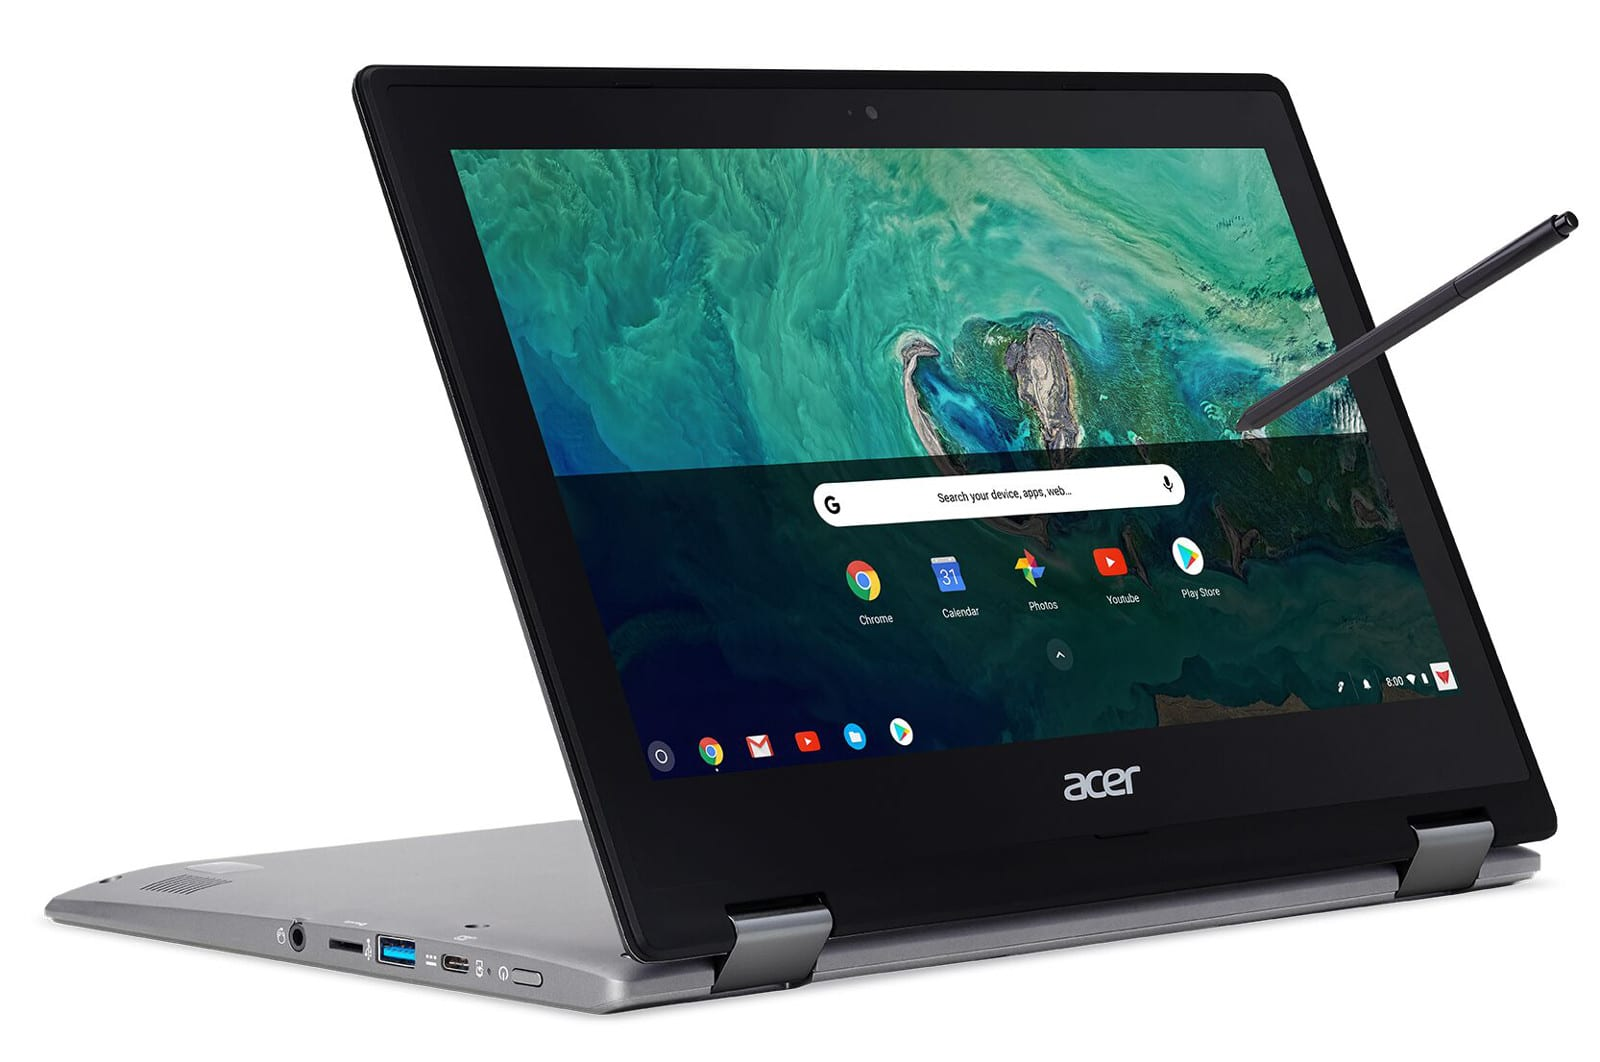 Acer's Spin 11 hybrid Chromebook supports Android apps